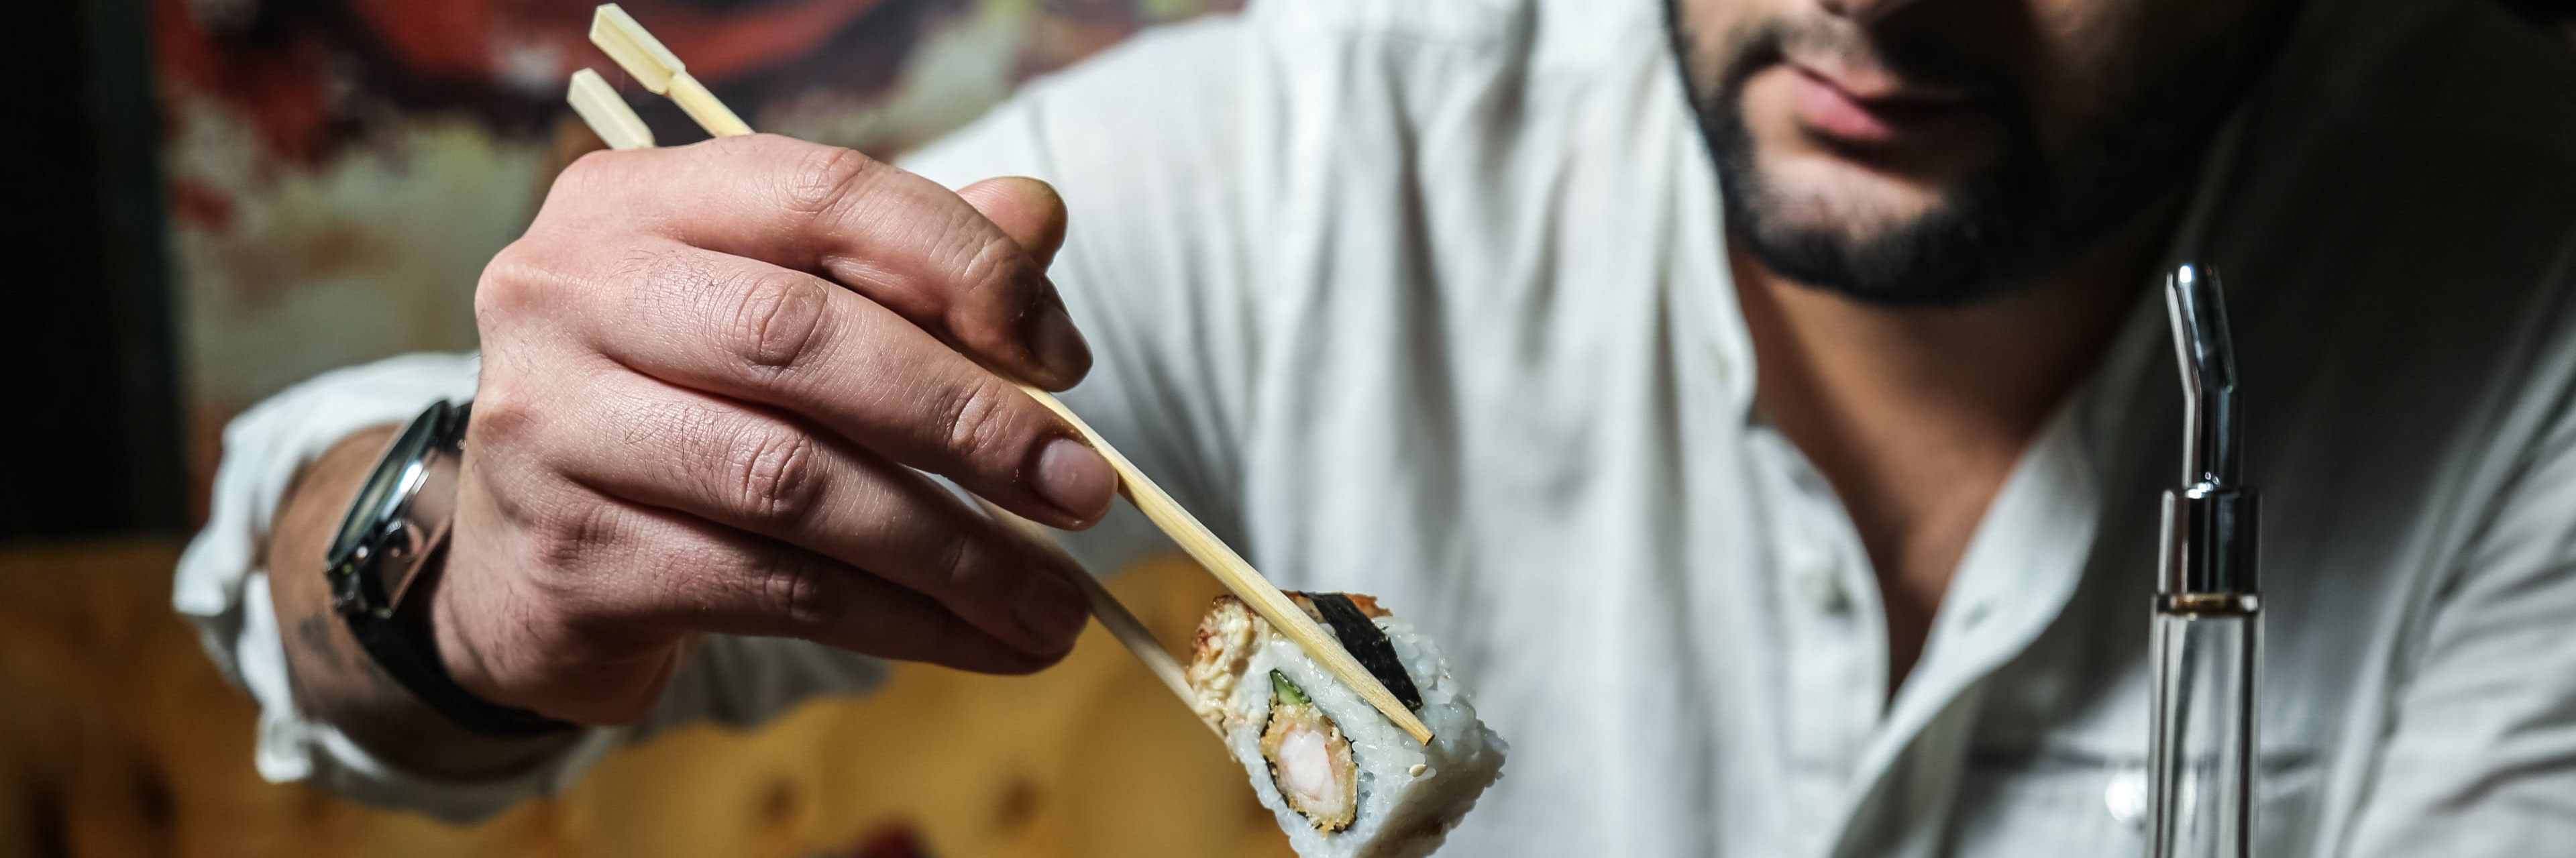 5 Delicious Japanese Dishes You've Never Heard Of